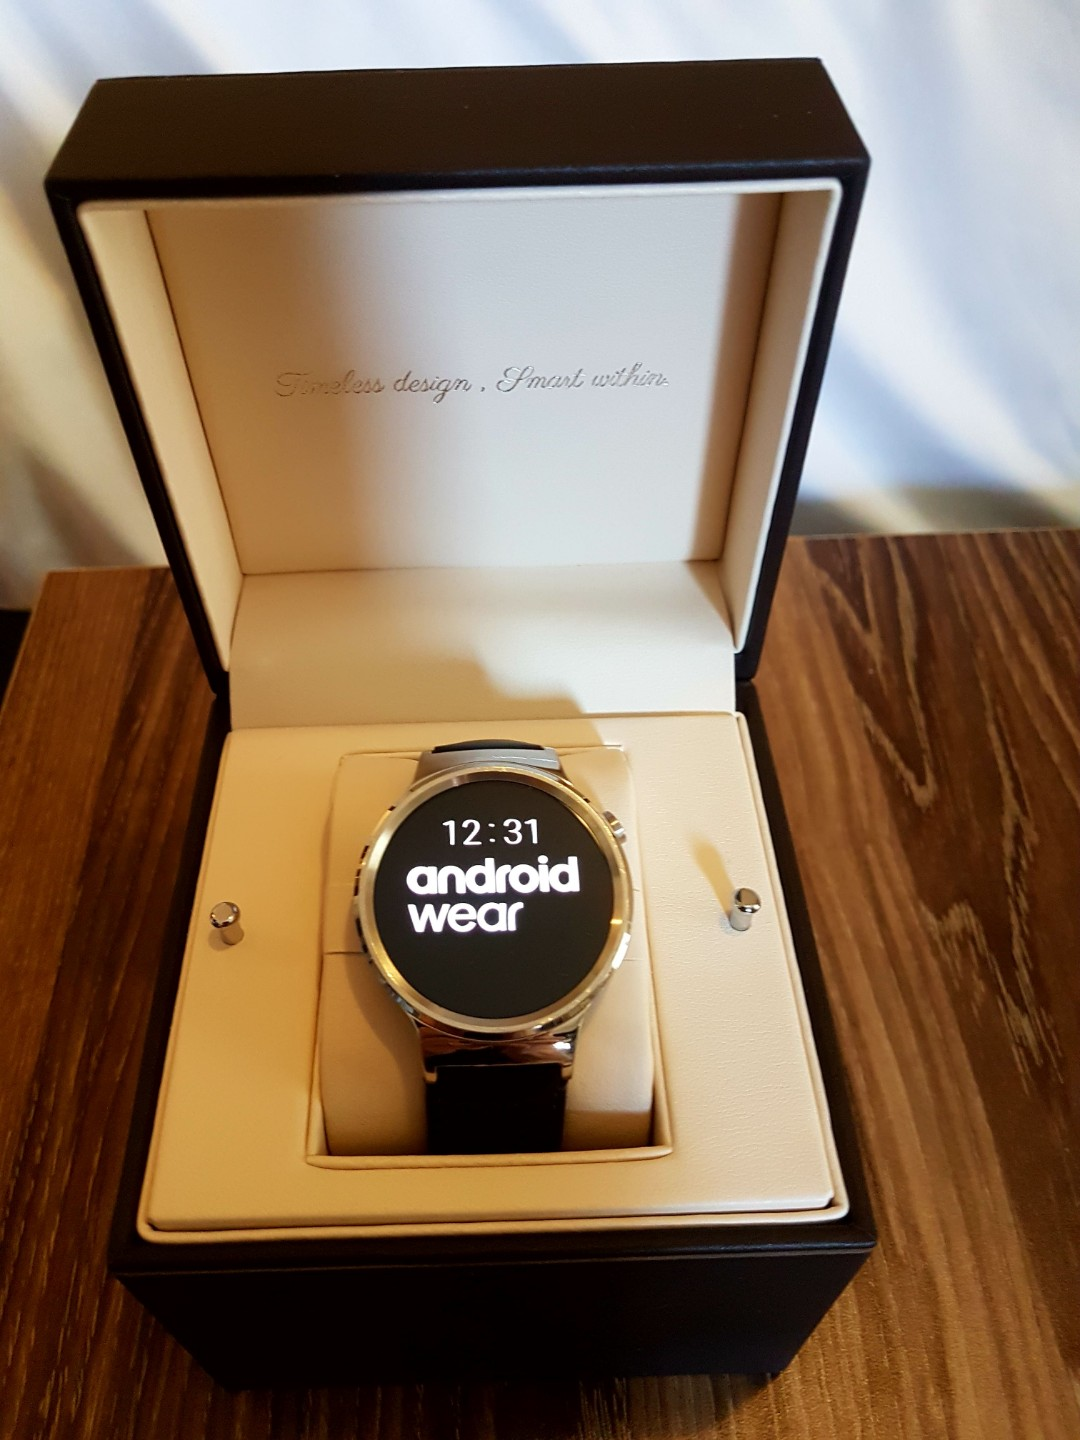 HUAWEI Android watch with black leather band